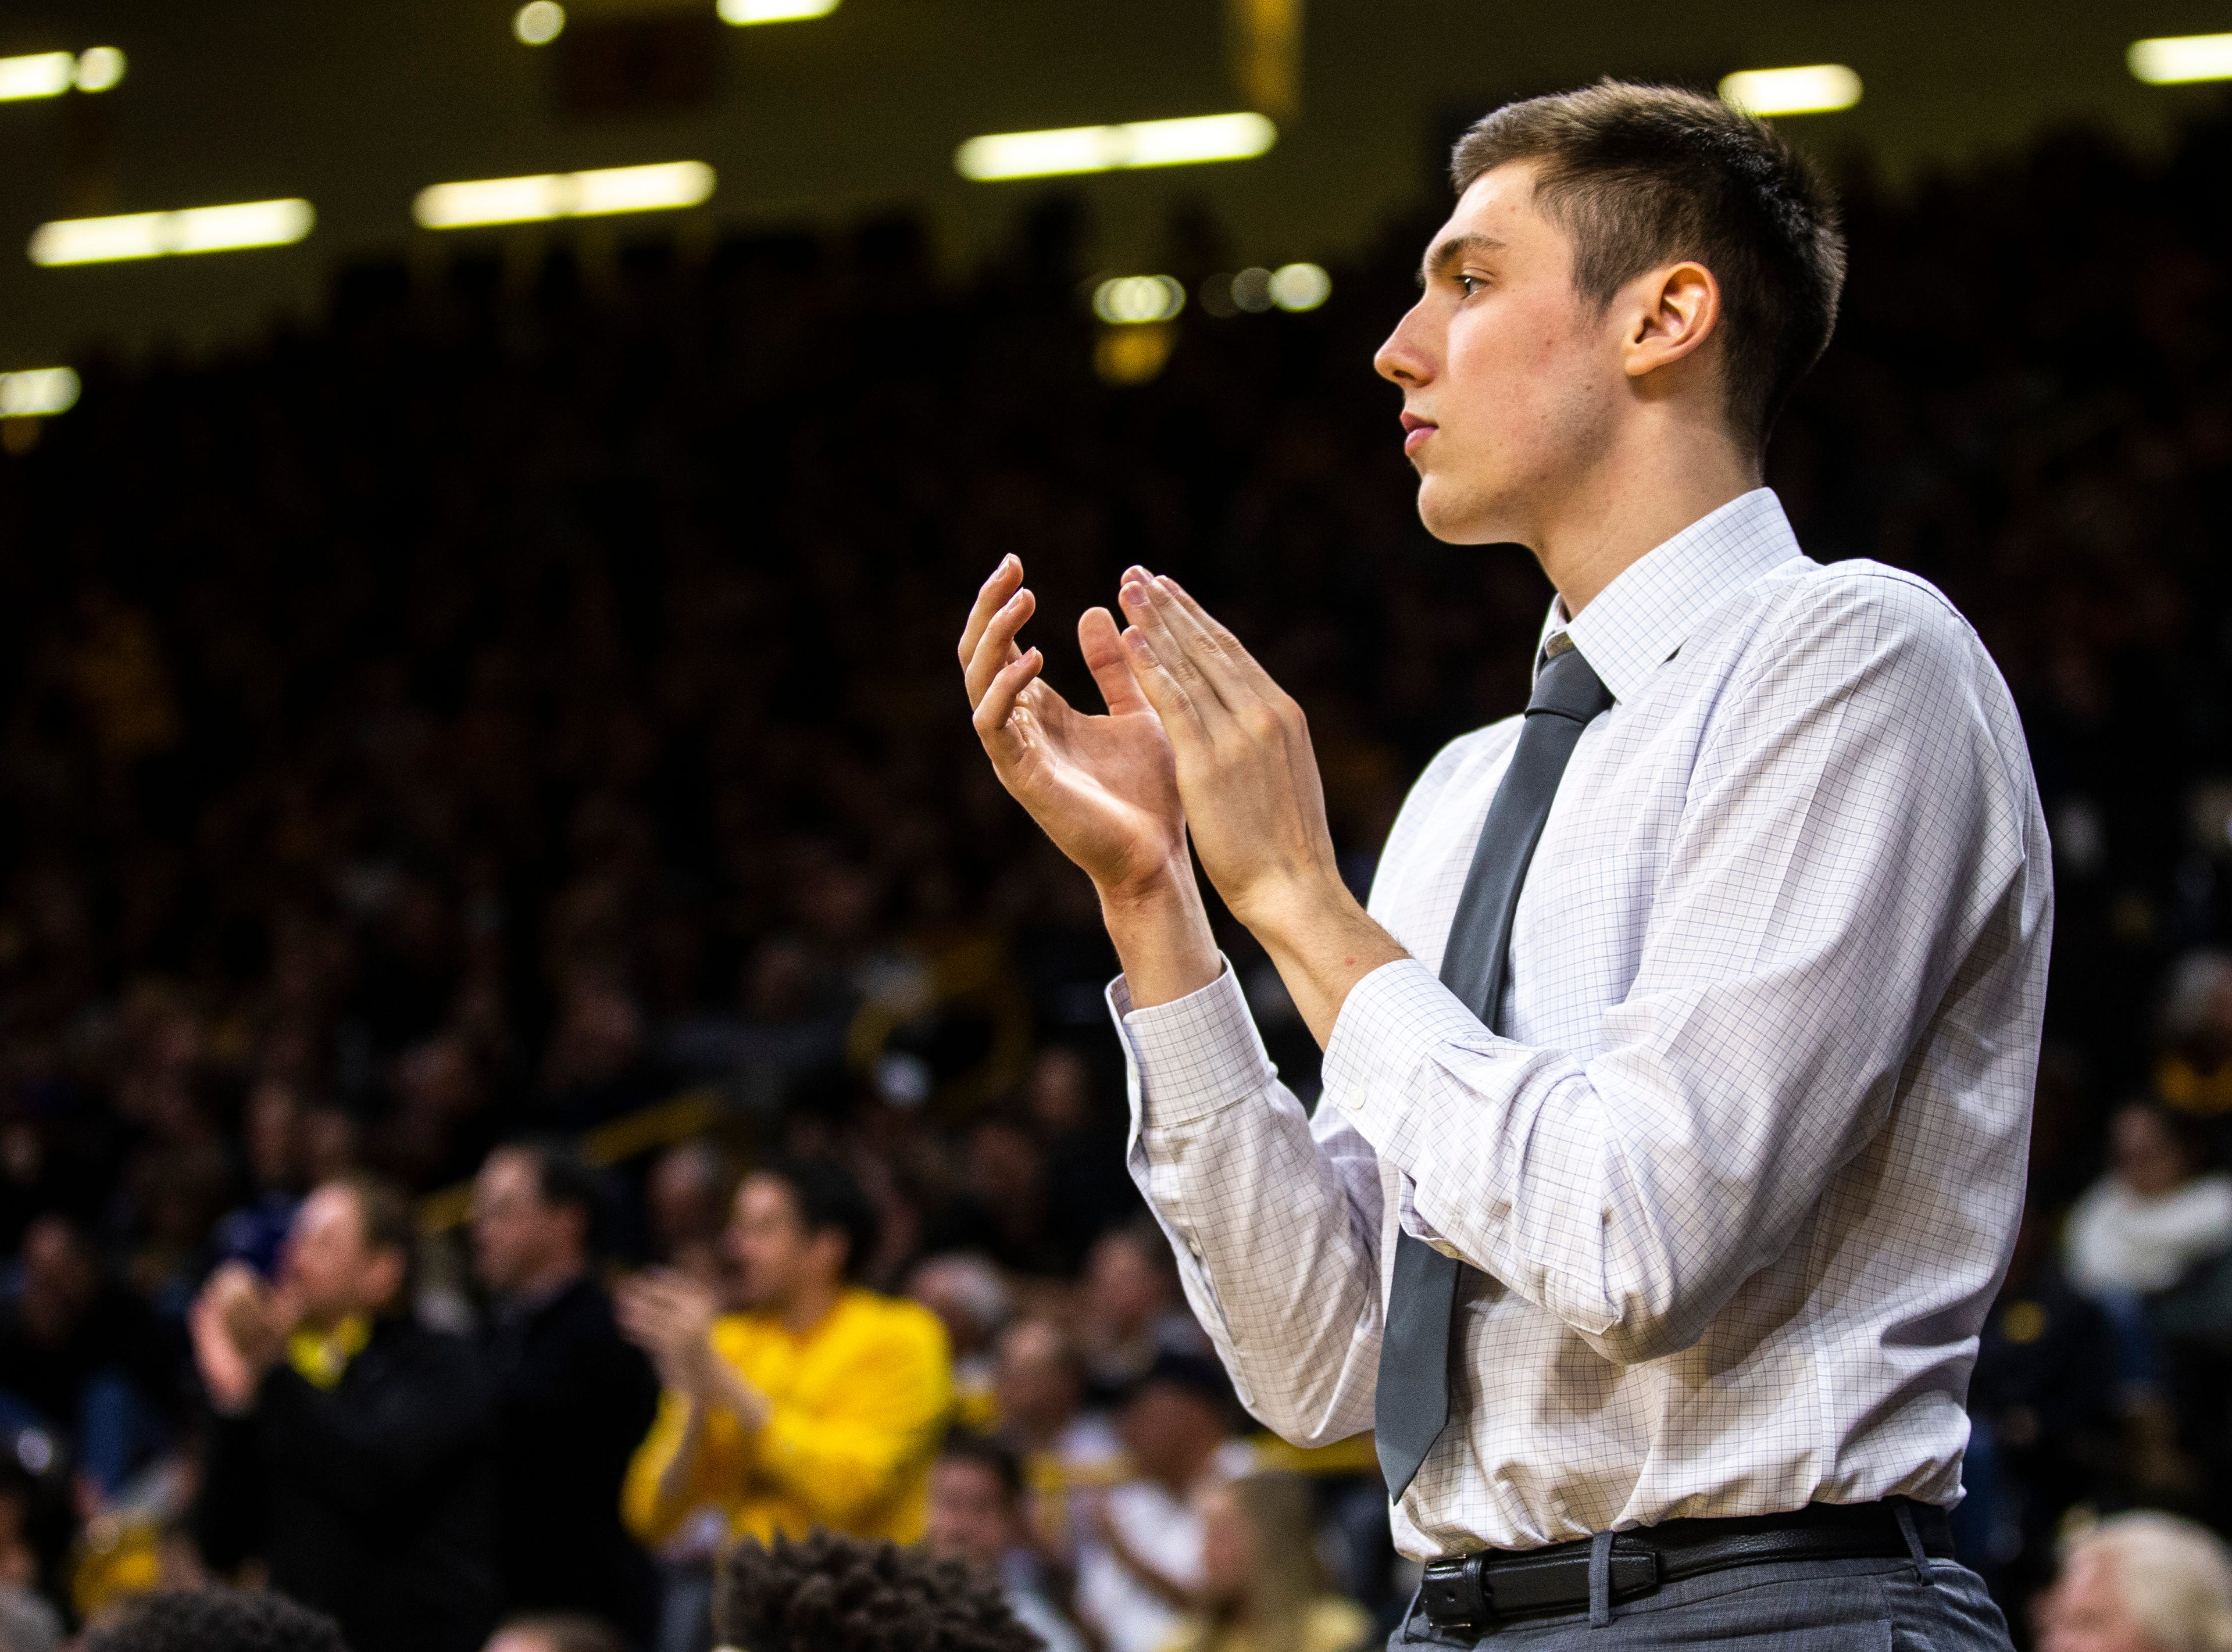 Iowa guard C.J. Fredrick claps during a NCAA Big Ten Conference men's basketball game on Tuesday, Feb. 19, 2019 at Carver-Hawkeye Arena in Iowa City, Iowa.